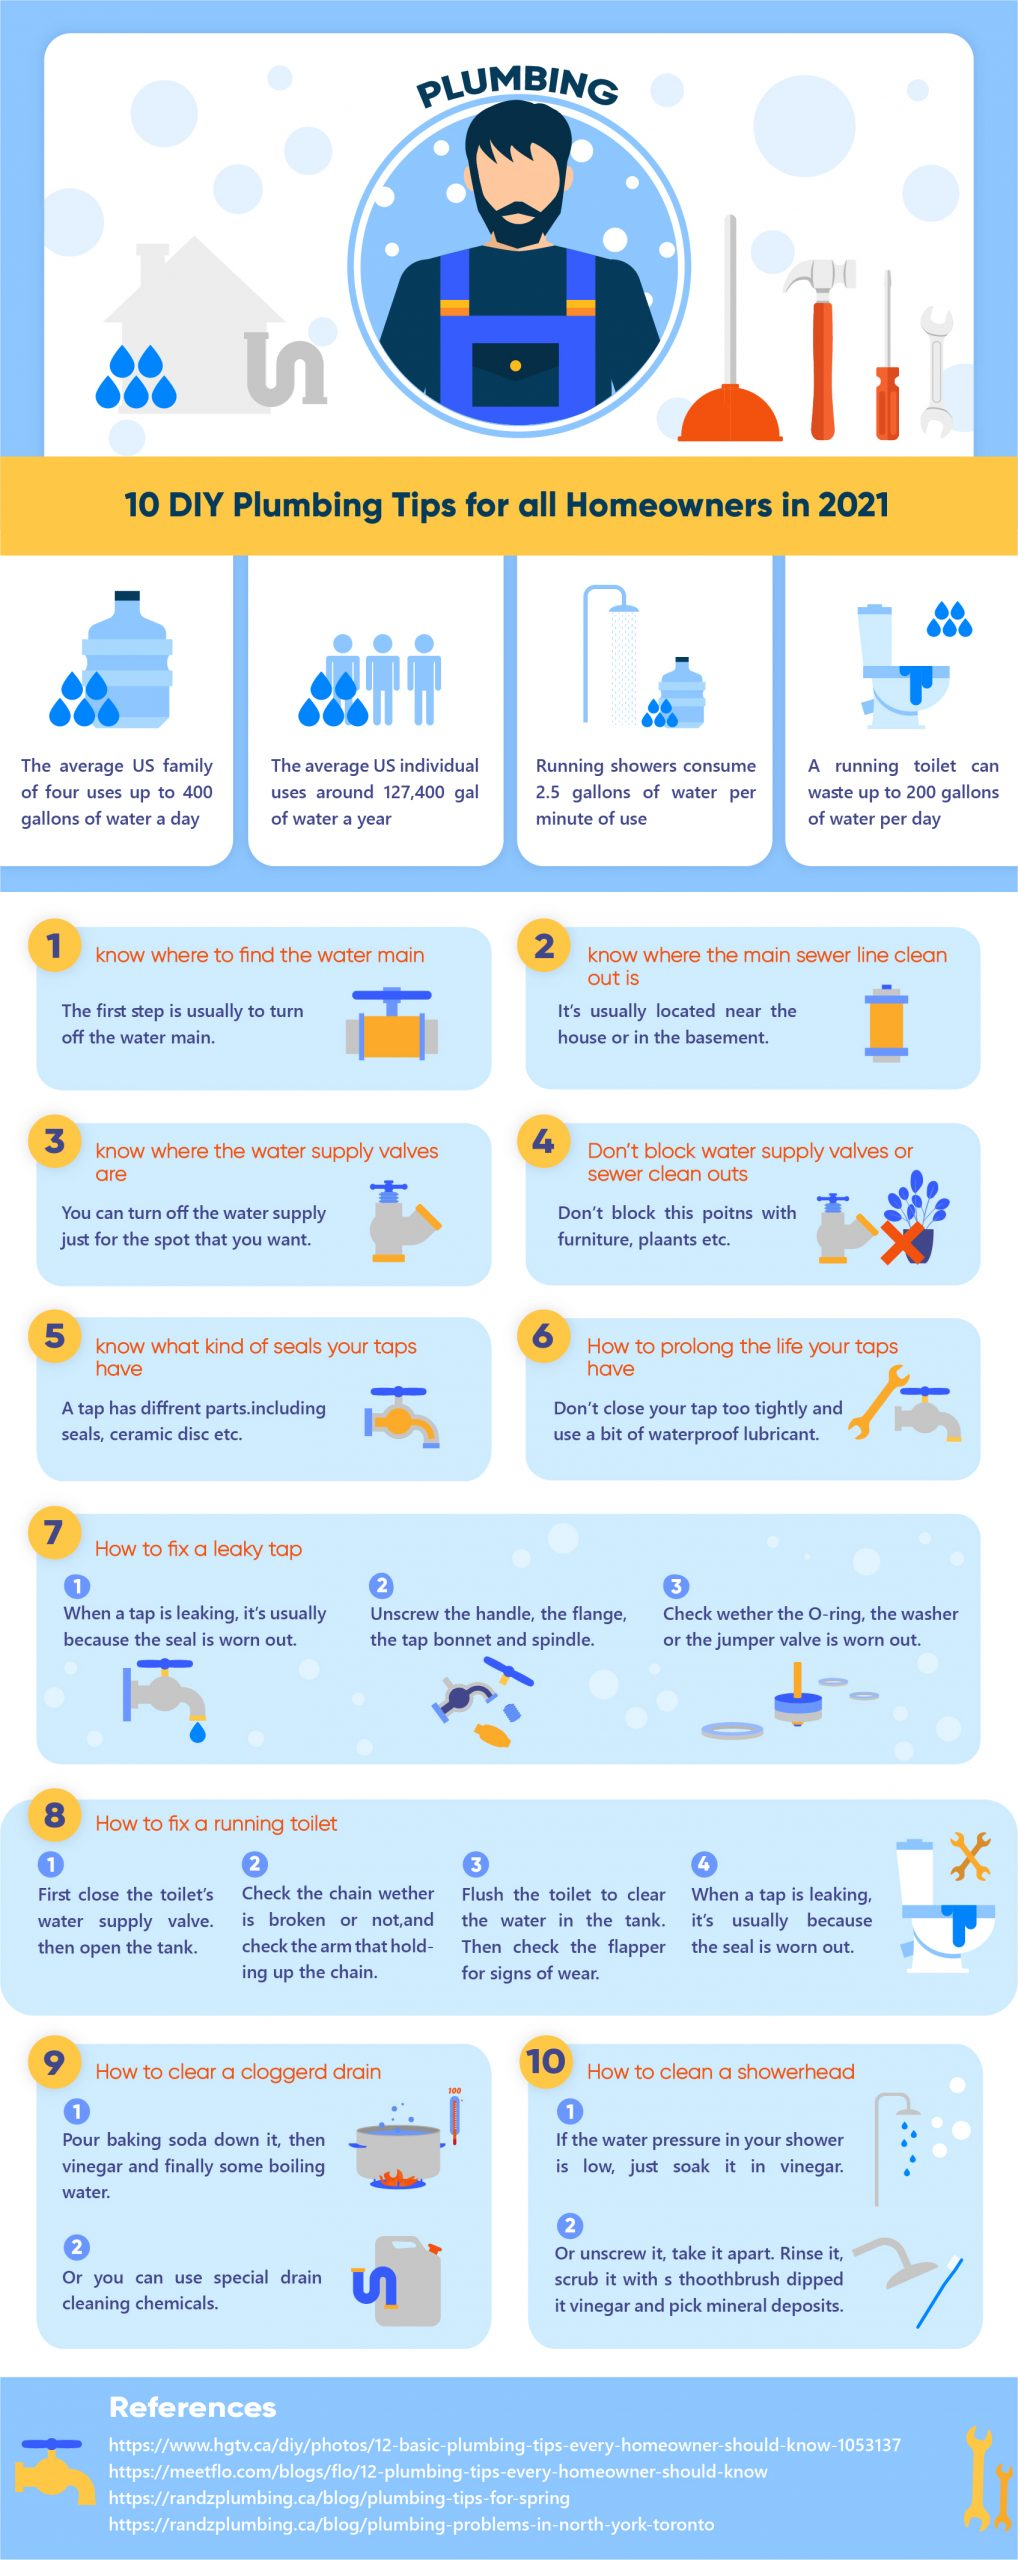 image - 10 DIY Plumbing Tips for all Homeowners in 2021 [Infographic]